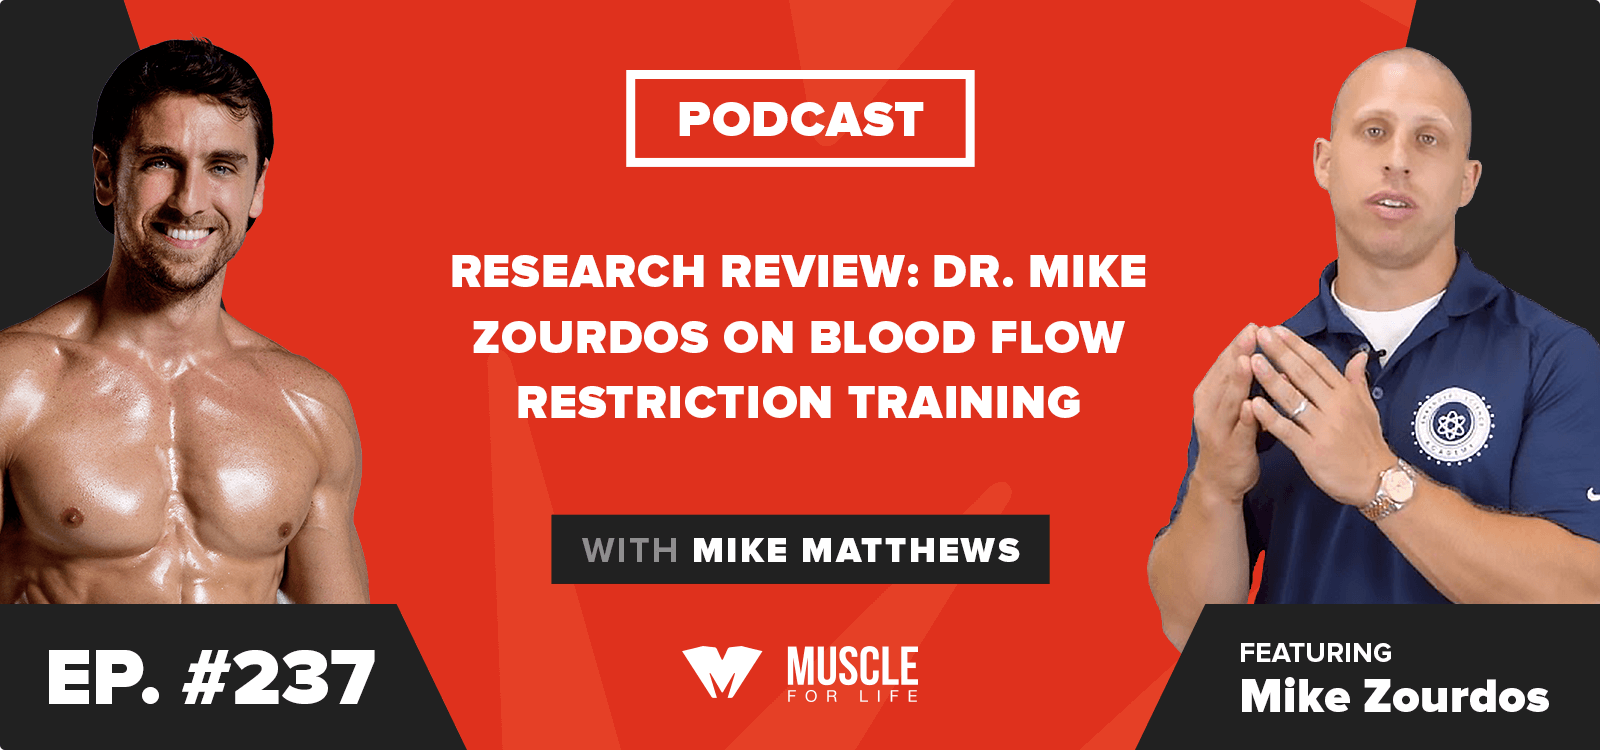 Research Review: Dr. Mike Zourdos on Blood Flow Restriction Training